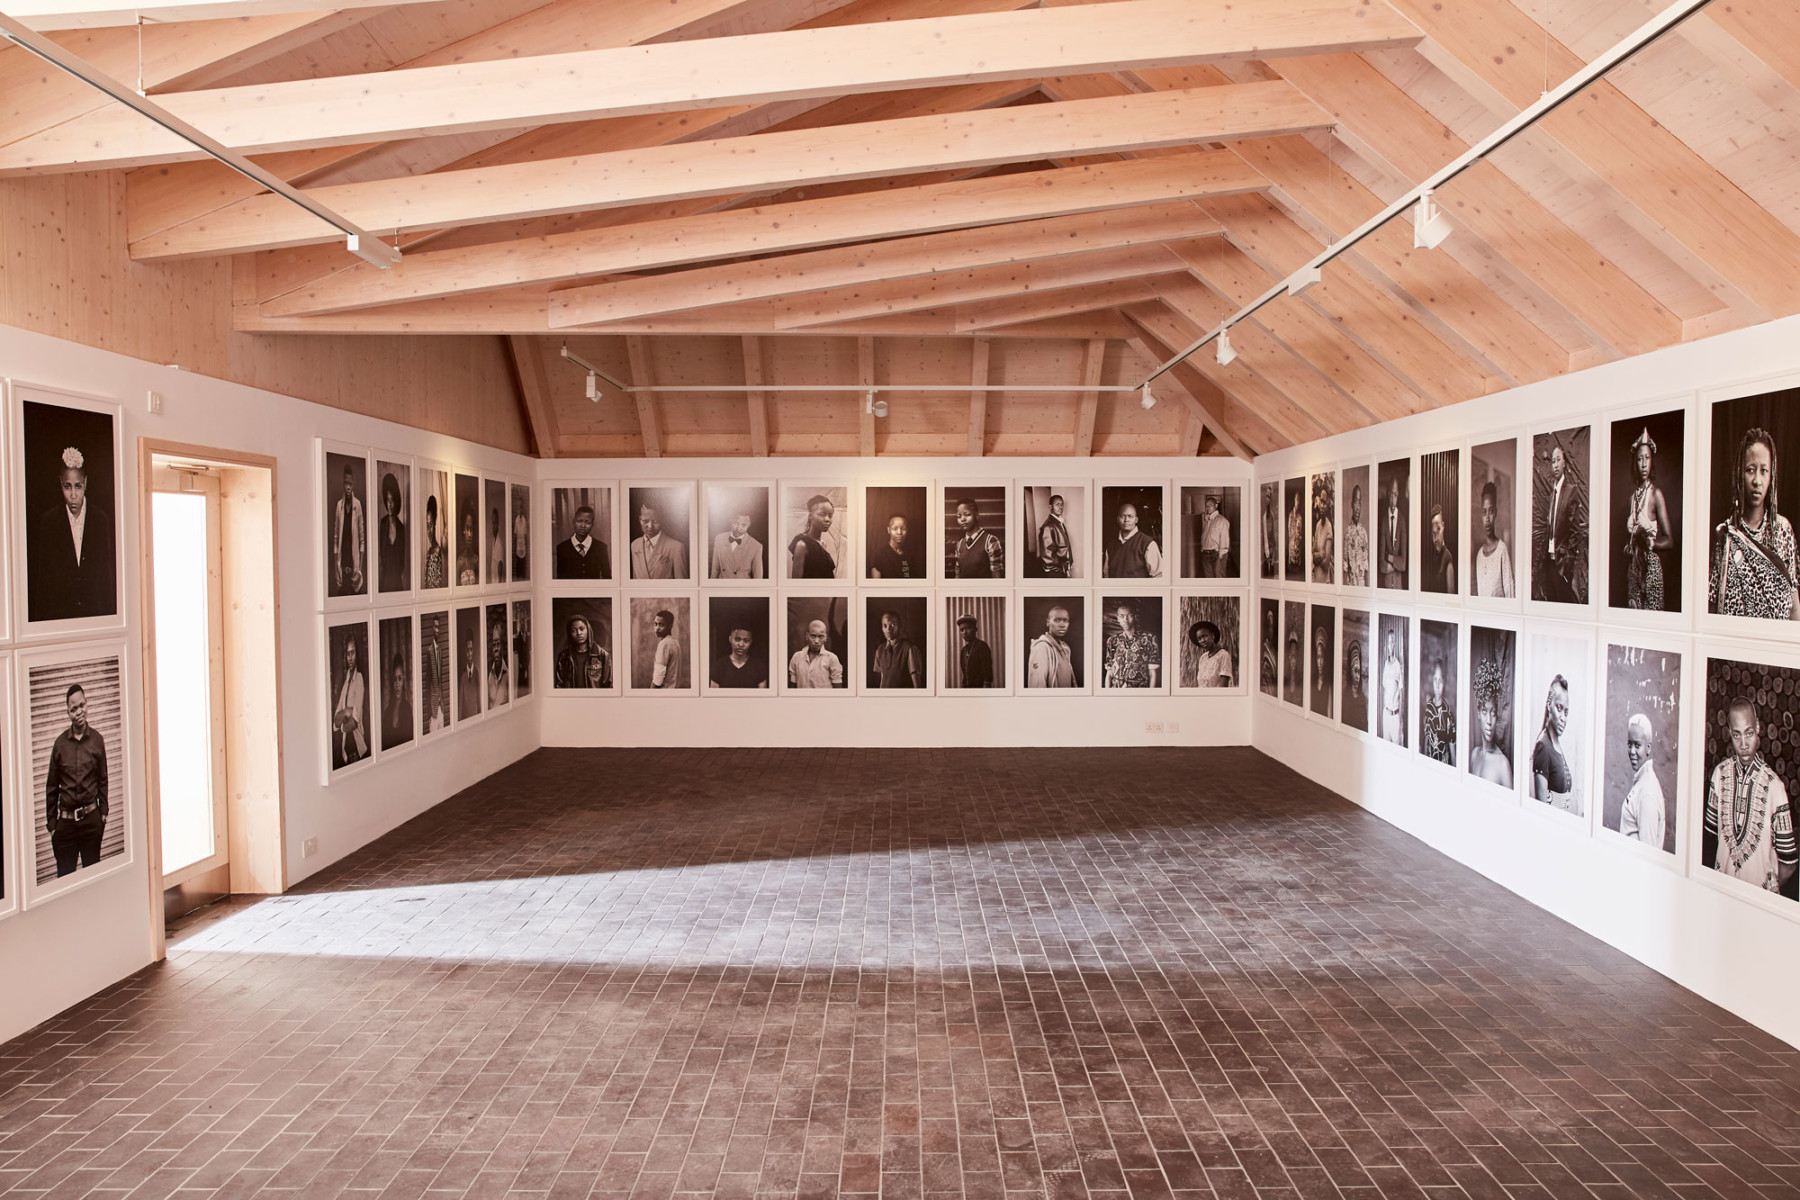 Alun-Callender Charleston barns exhibition-Centre-jamie-fobert-architects